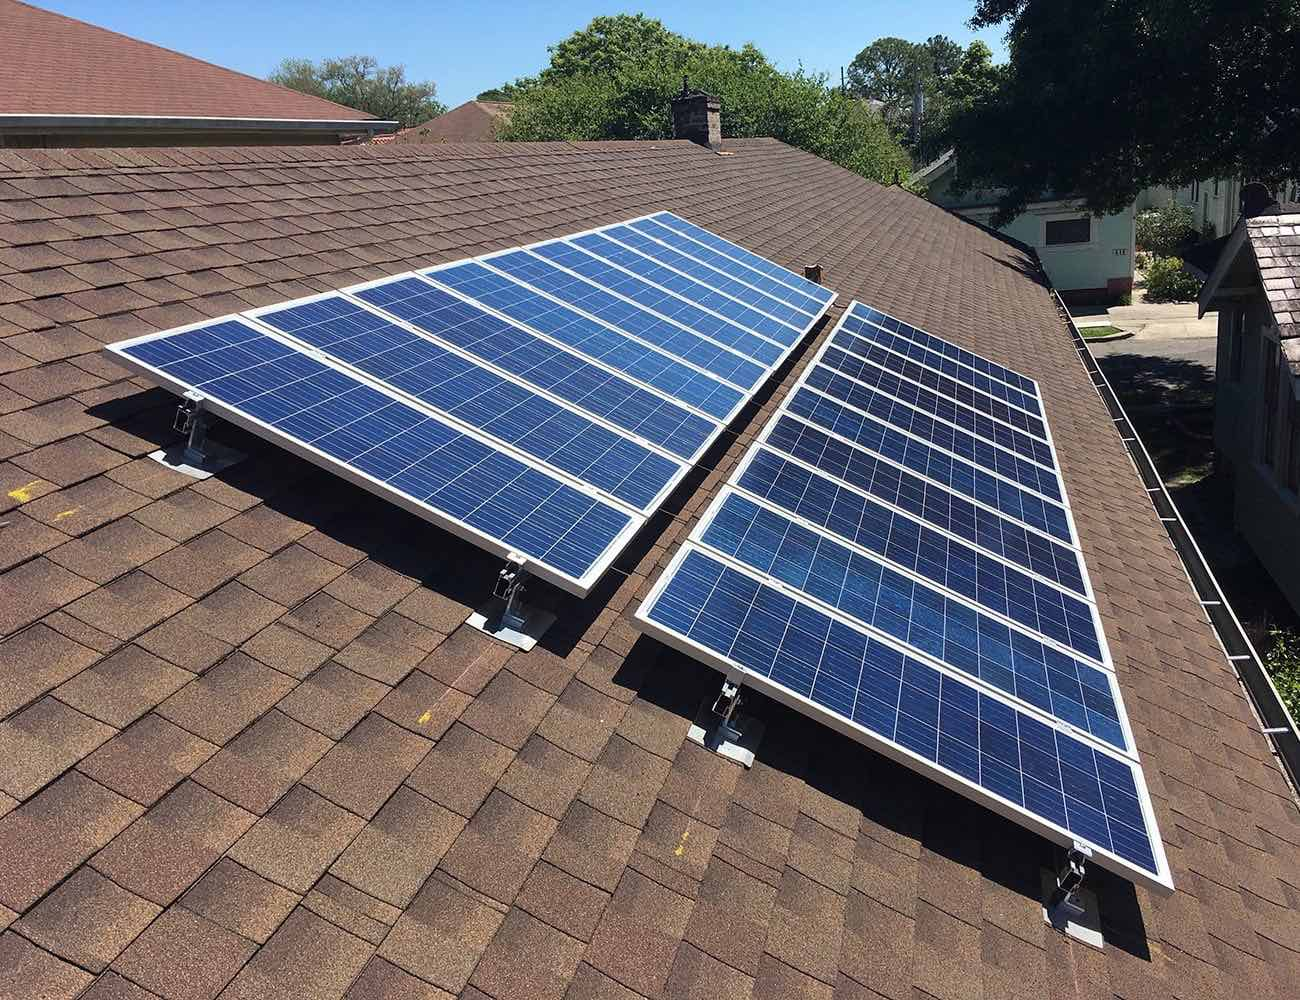 Diy Solar Panel Mount Legion Solar 2 Diy Solar Panel Kits Gadget Flow